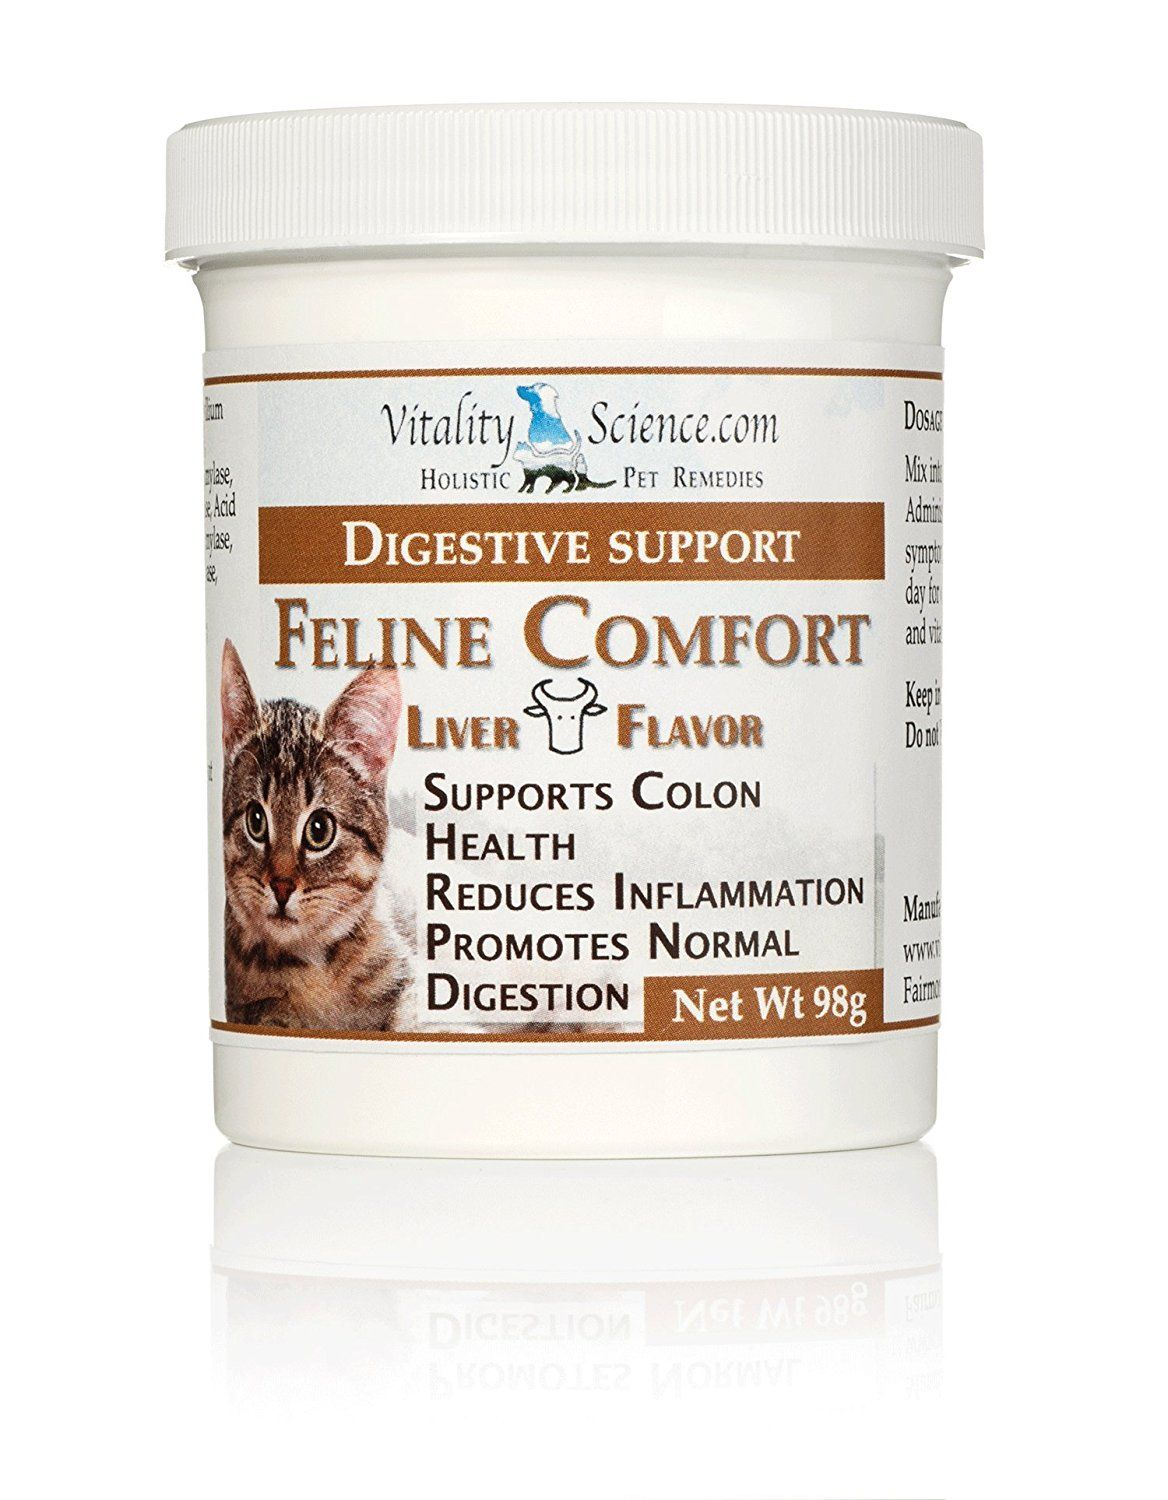 Feline Comfort For Cats With Vomiting And Diarrhea Dietary Supplement You Will Love This More Info Here Cat Supplies Digestion Aid Digestive Support